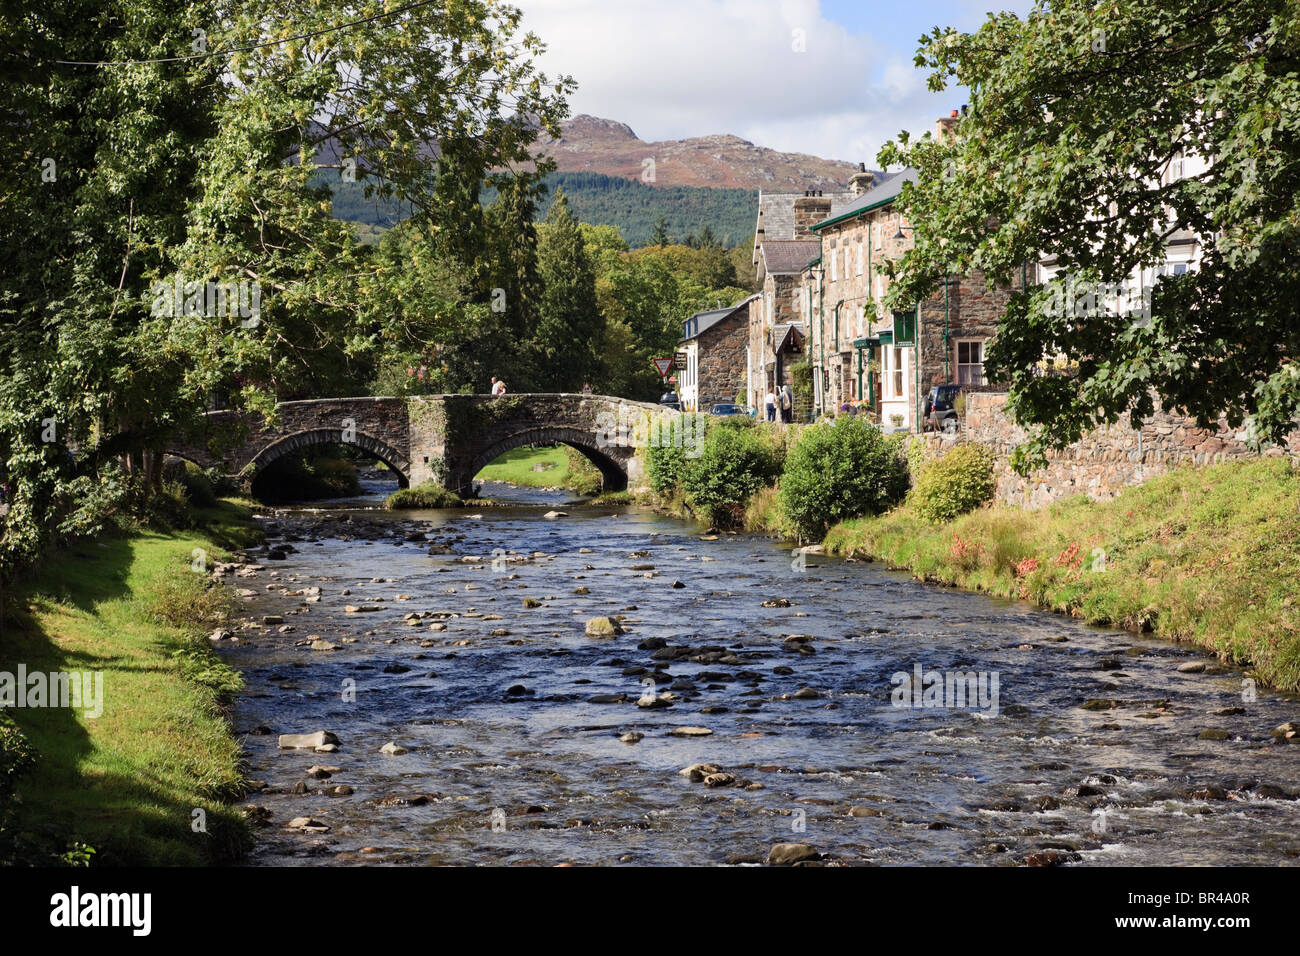 Beddgelert, Gwynedd, North Wales, UK, Europe. View along Afon Colwyn River to the old arched bridge in the village - Stock Image